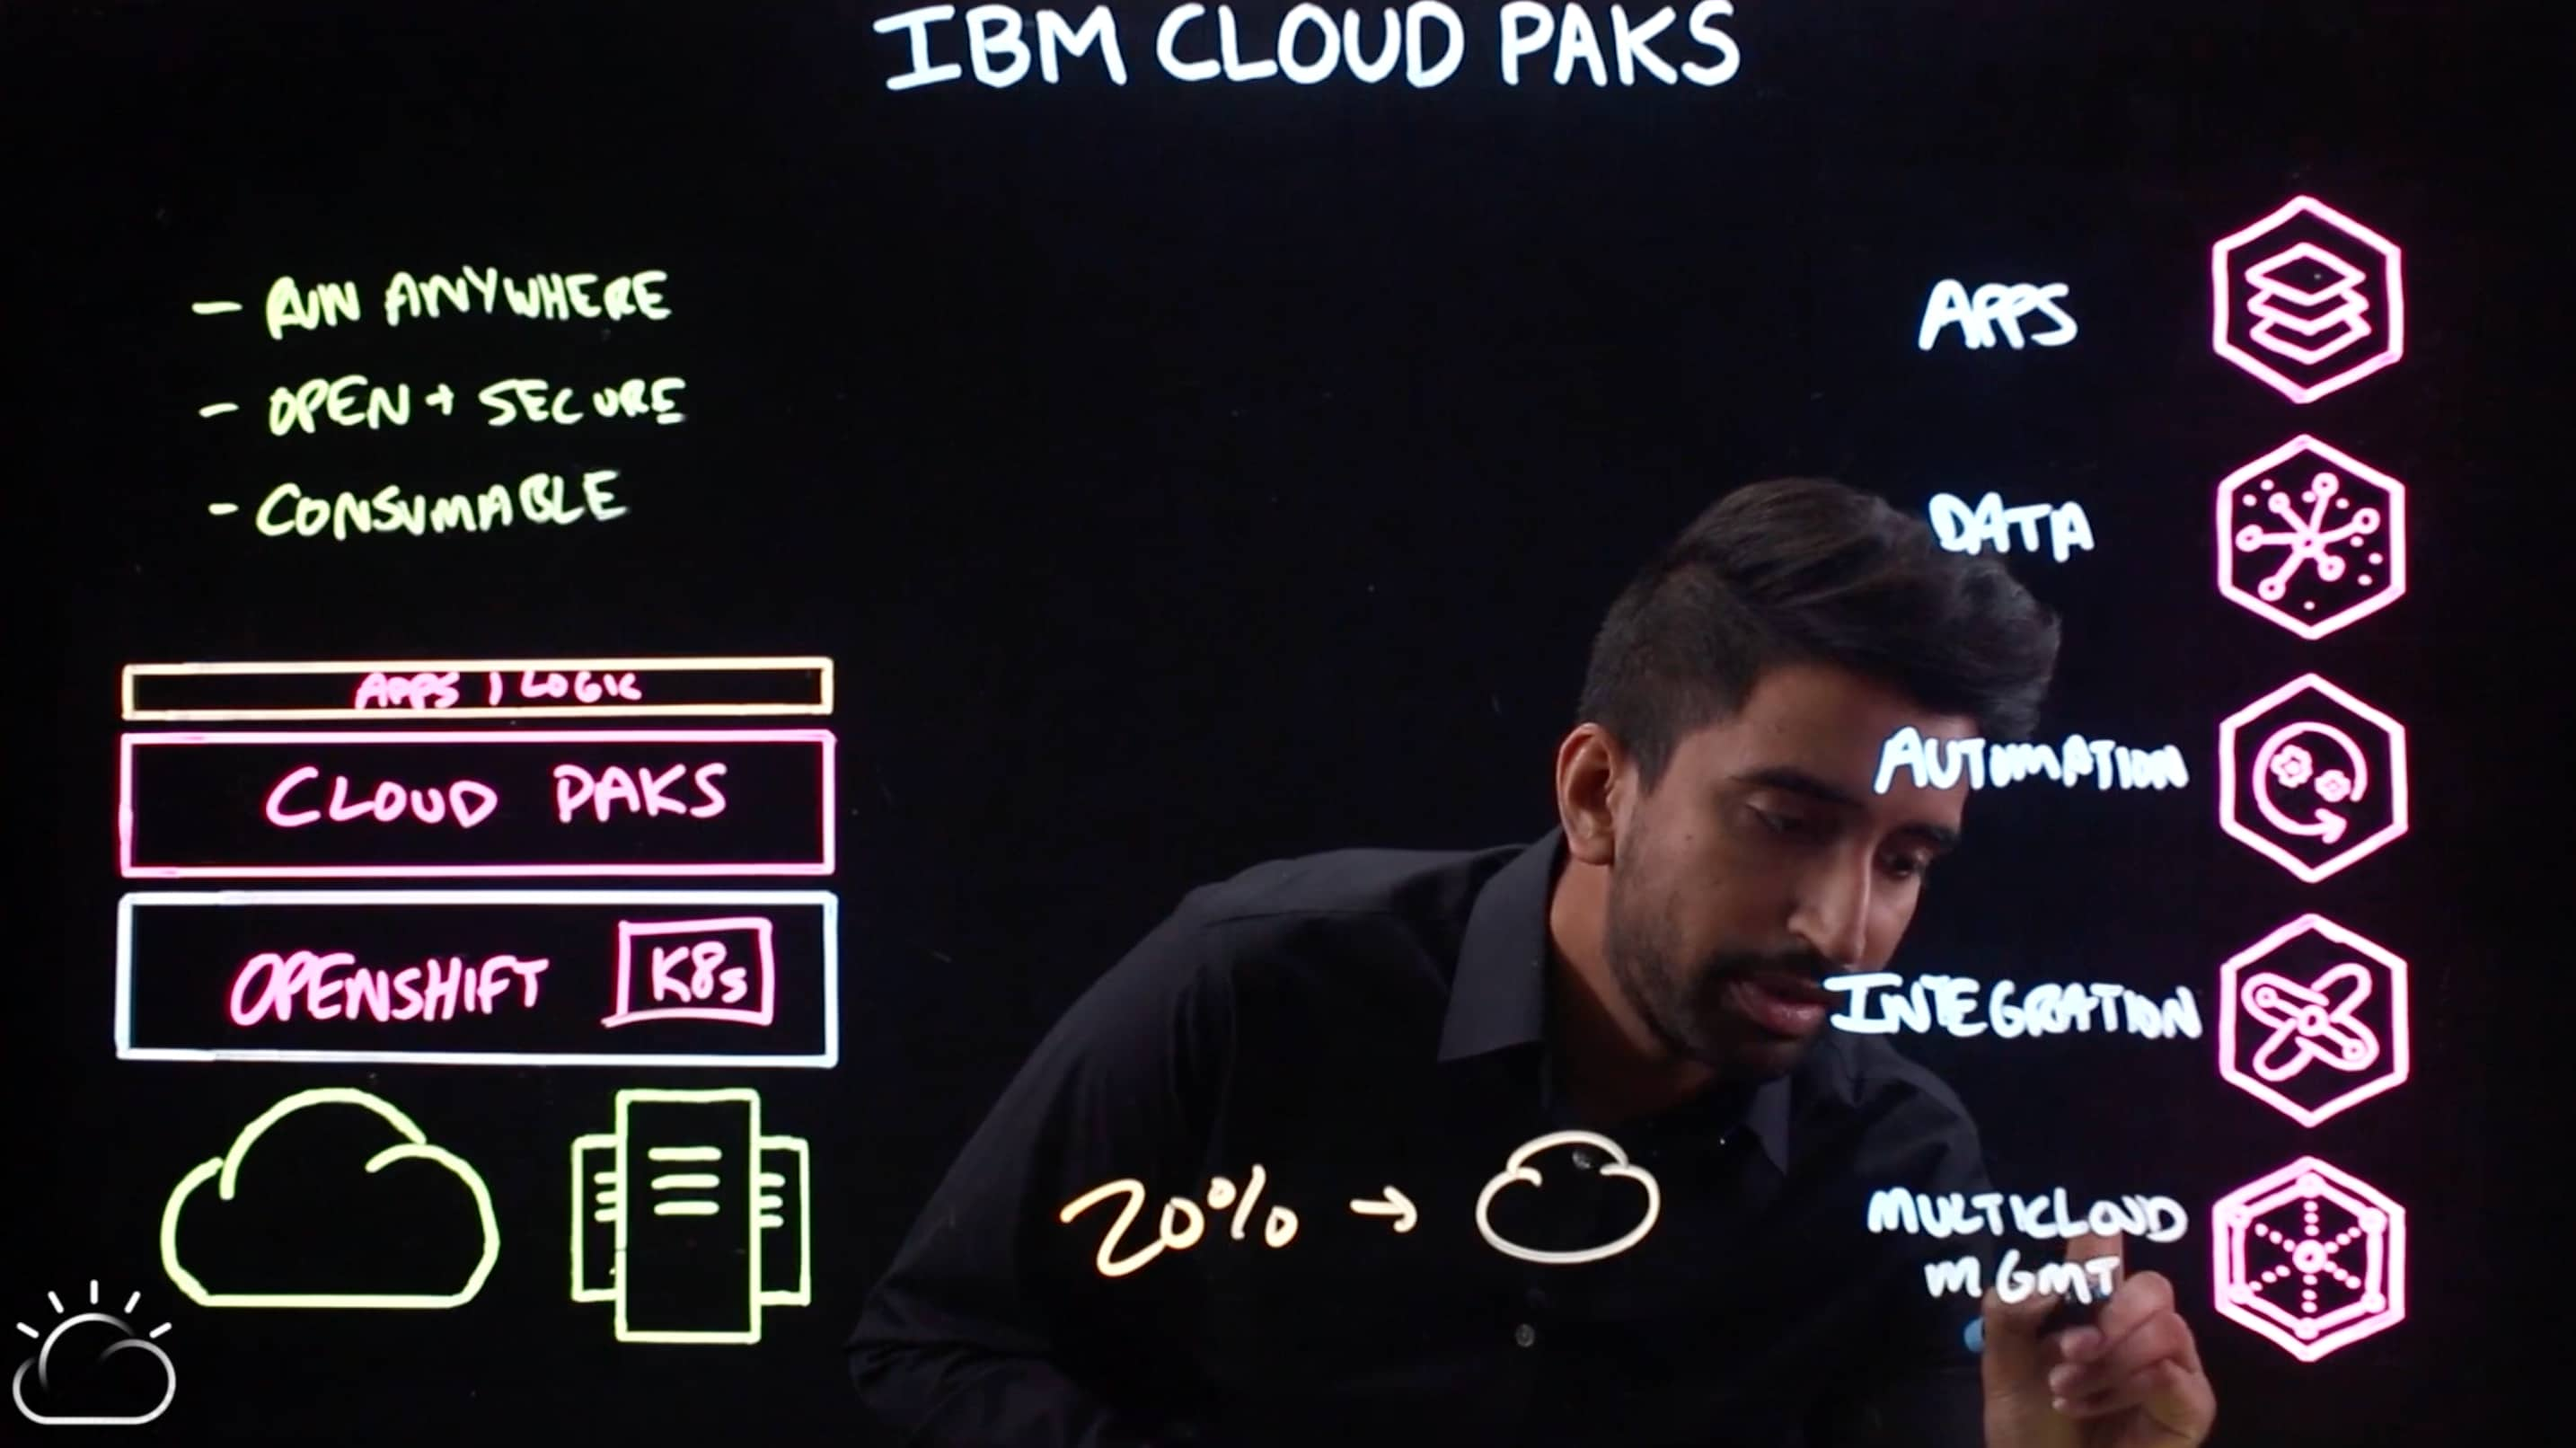 IBM Cloud Pak for Multicloud Management